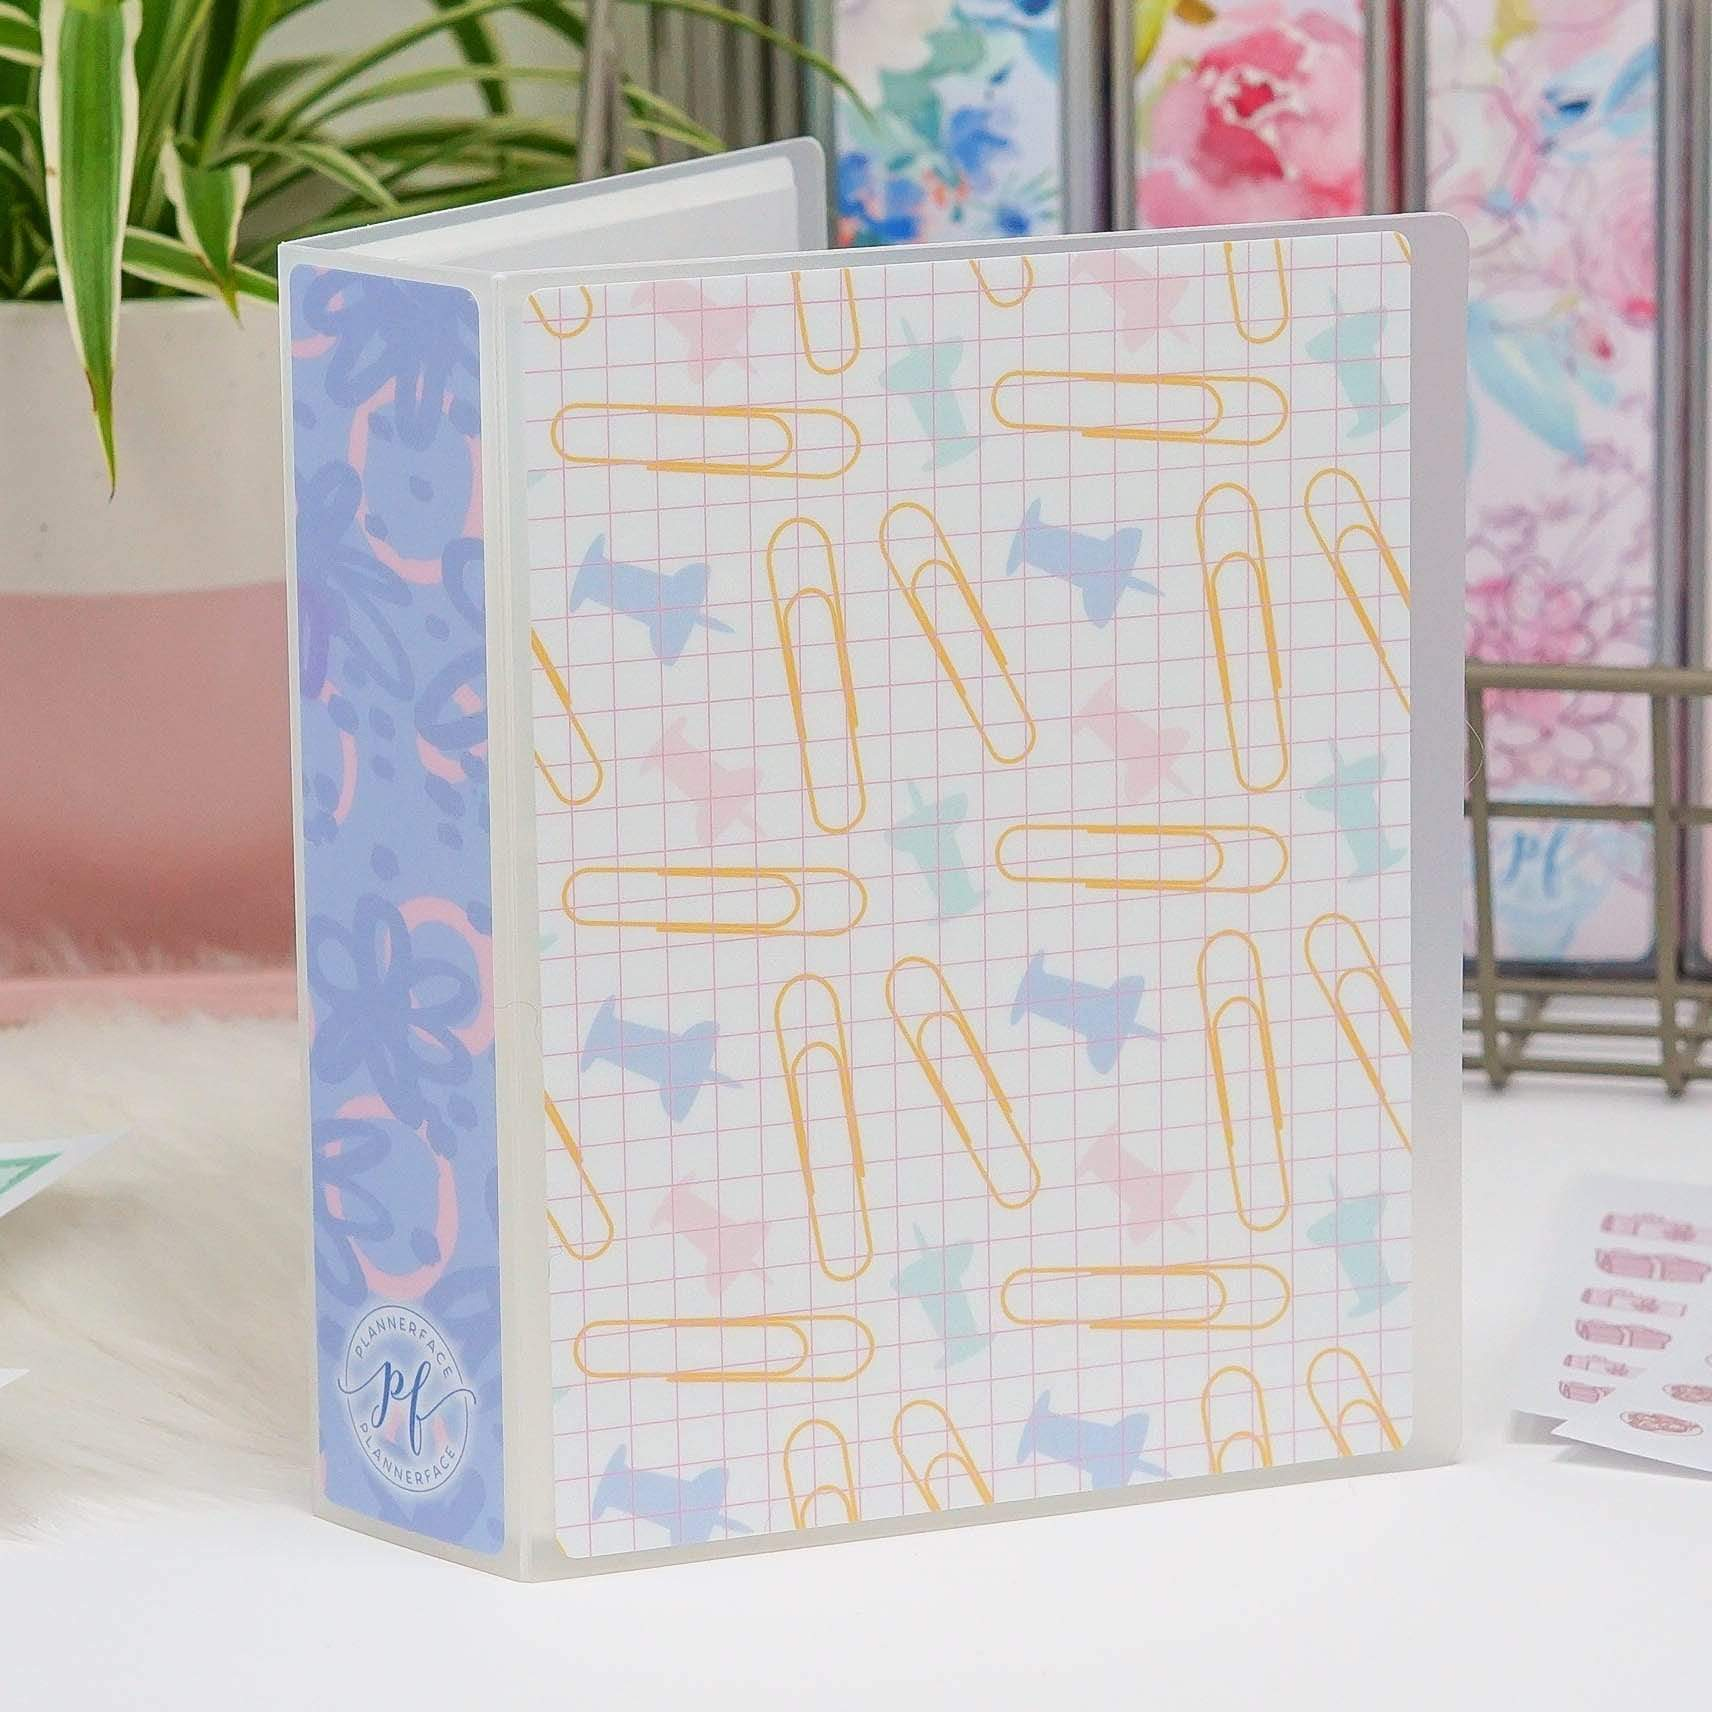 Plannerface Stationery Addict Sticker Album (Small) Planner Stickers